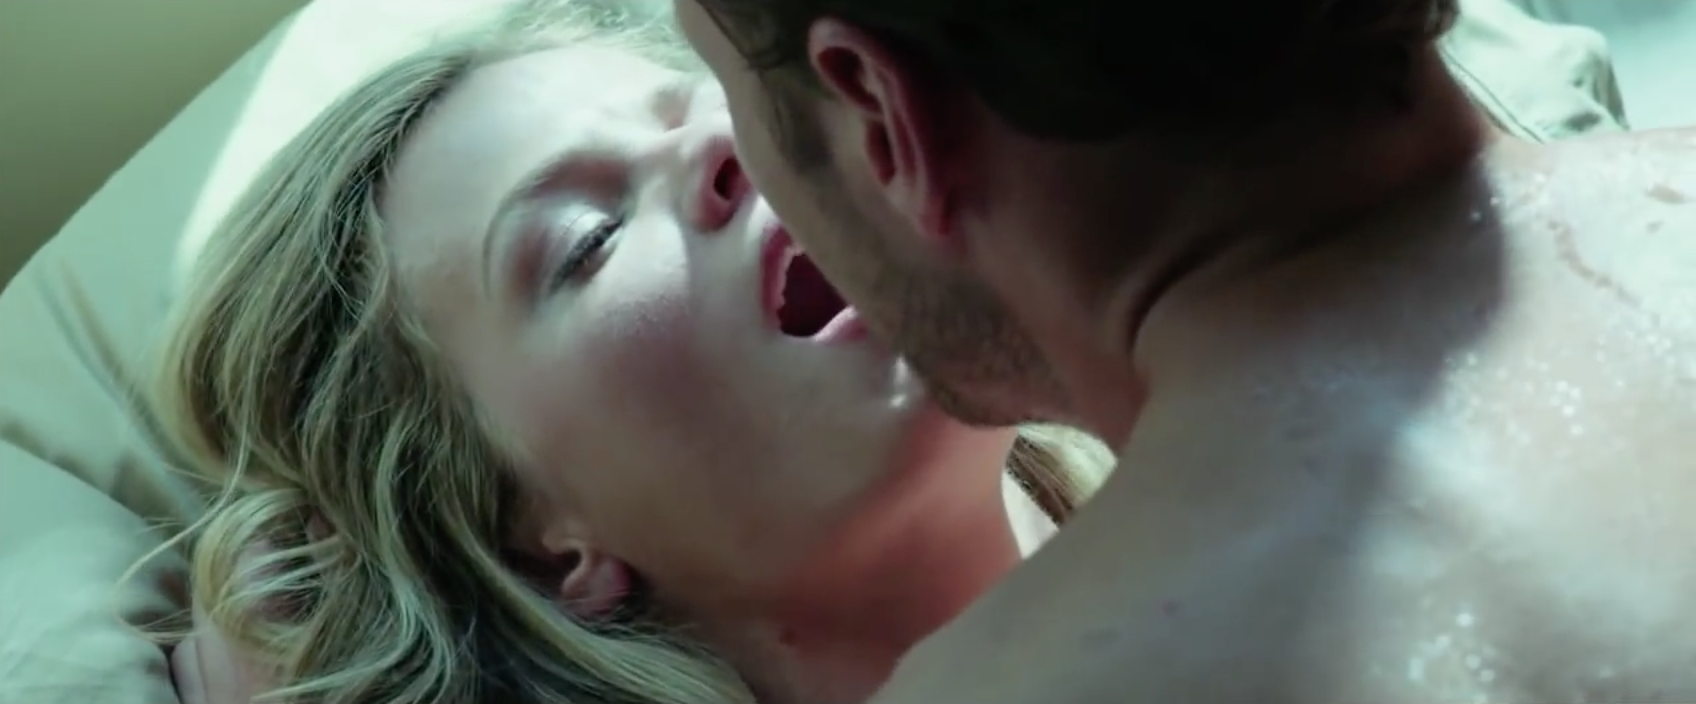 Sex Scene In A Film 103